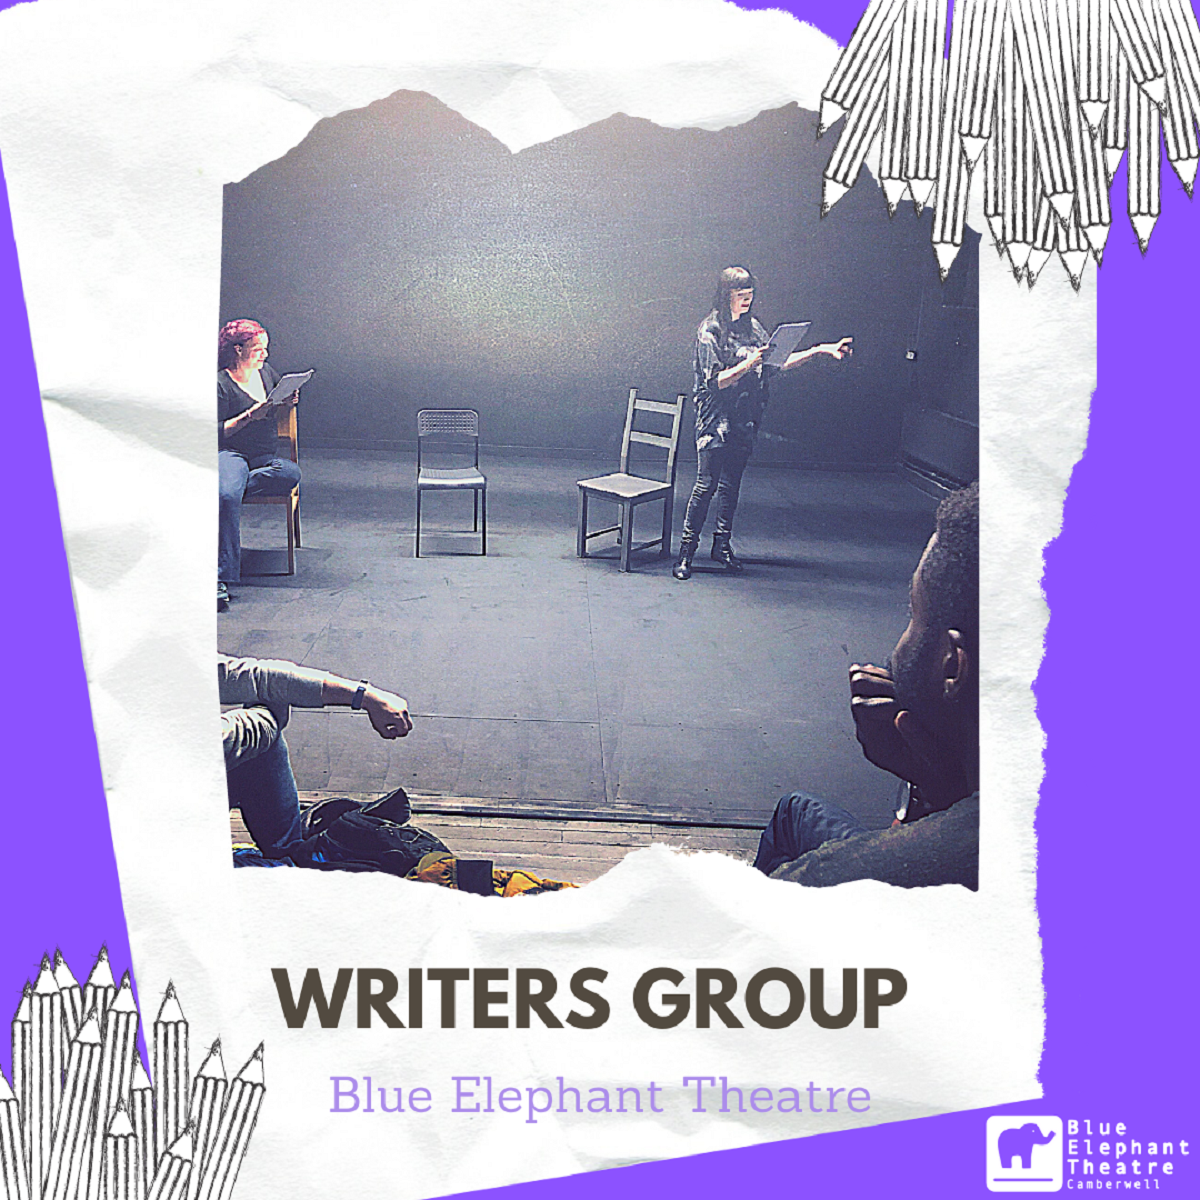 article thumb - Writers Group poster with a purple background, and image of two women reading from script, one sitting and one standing